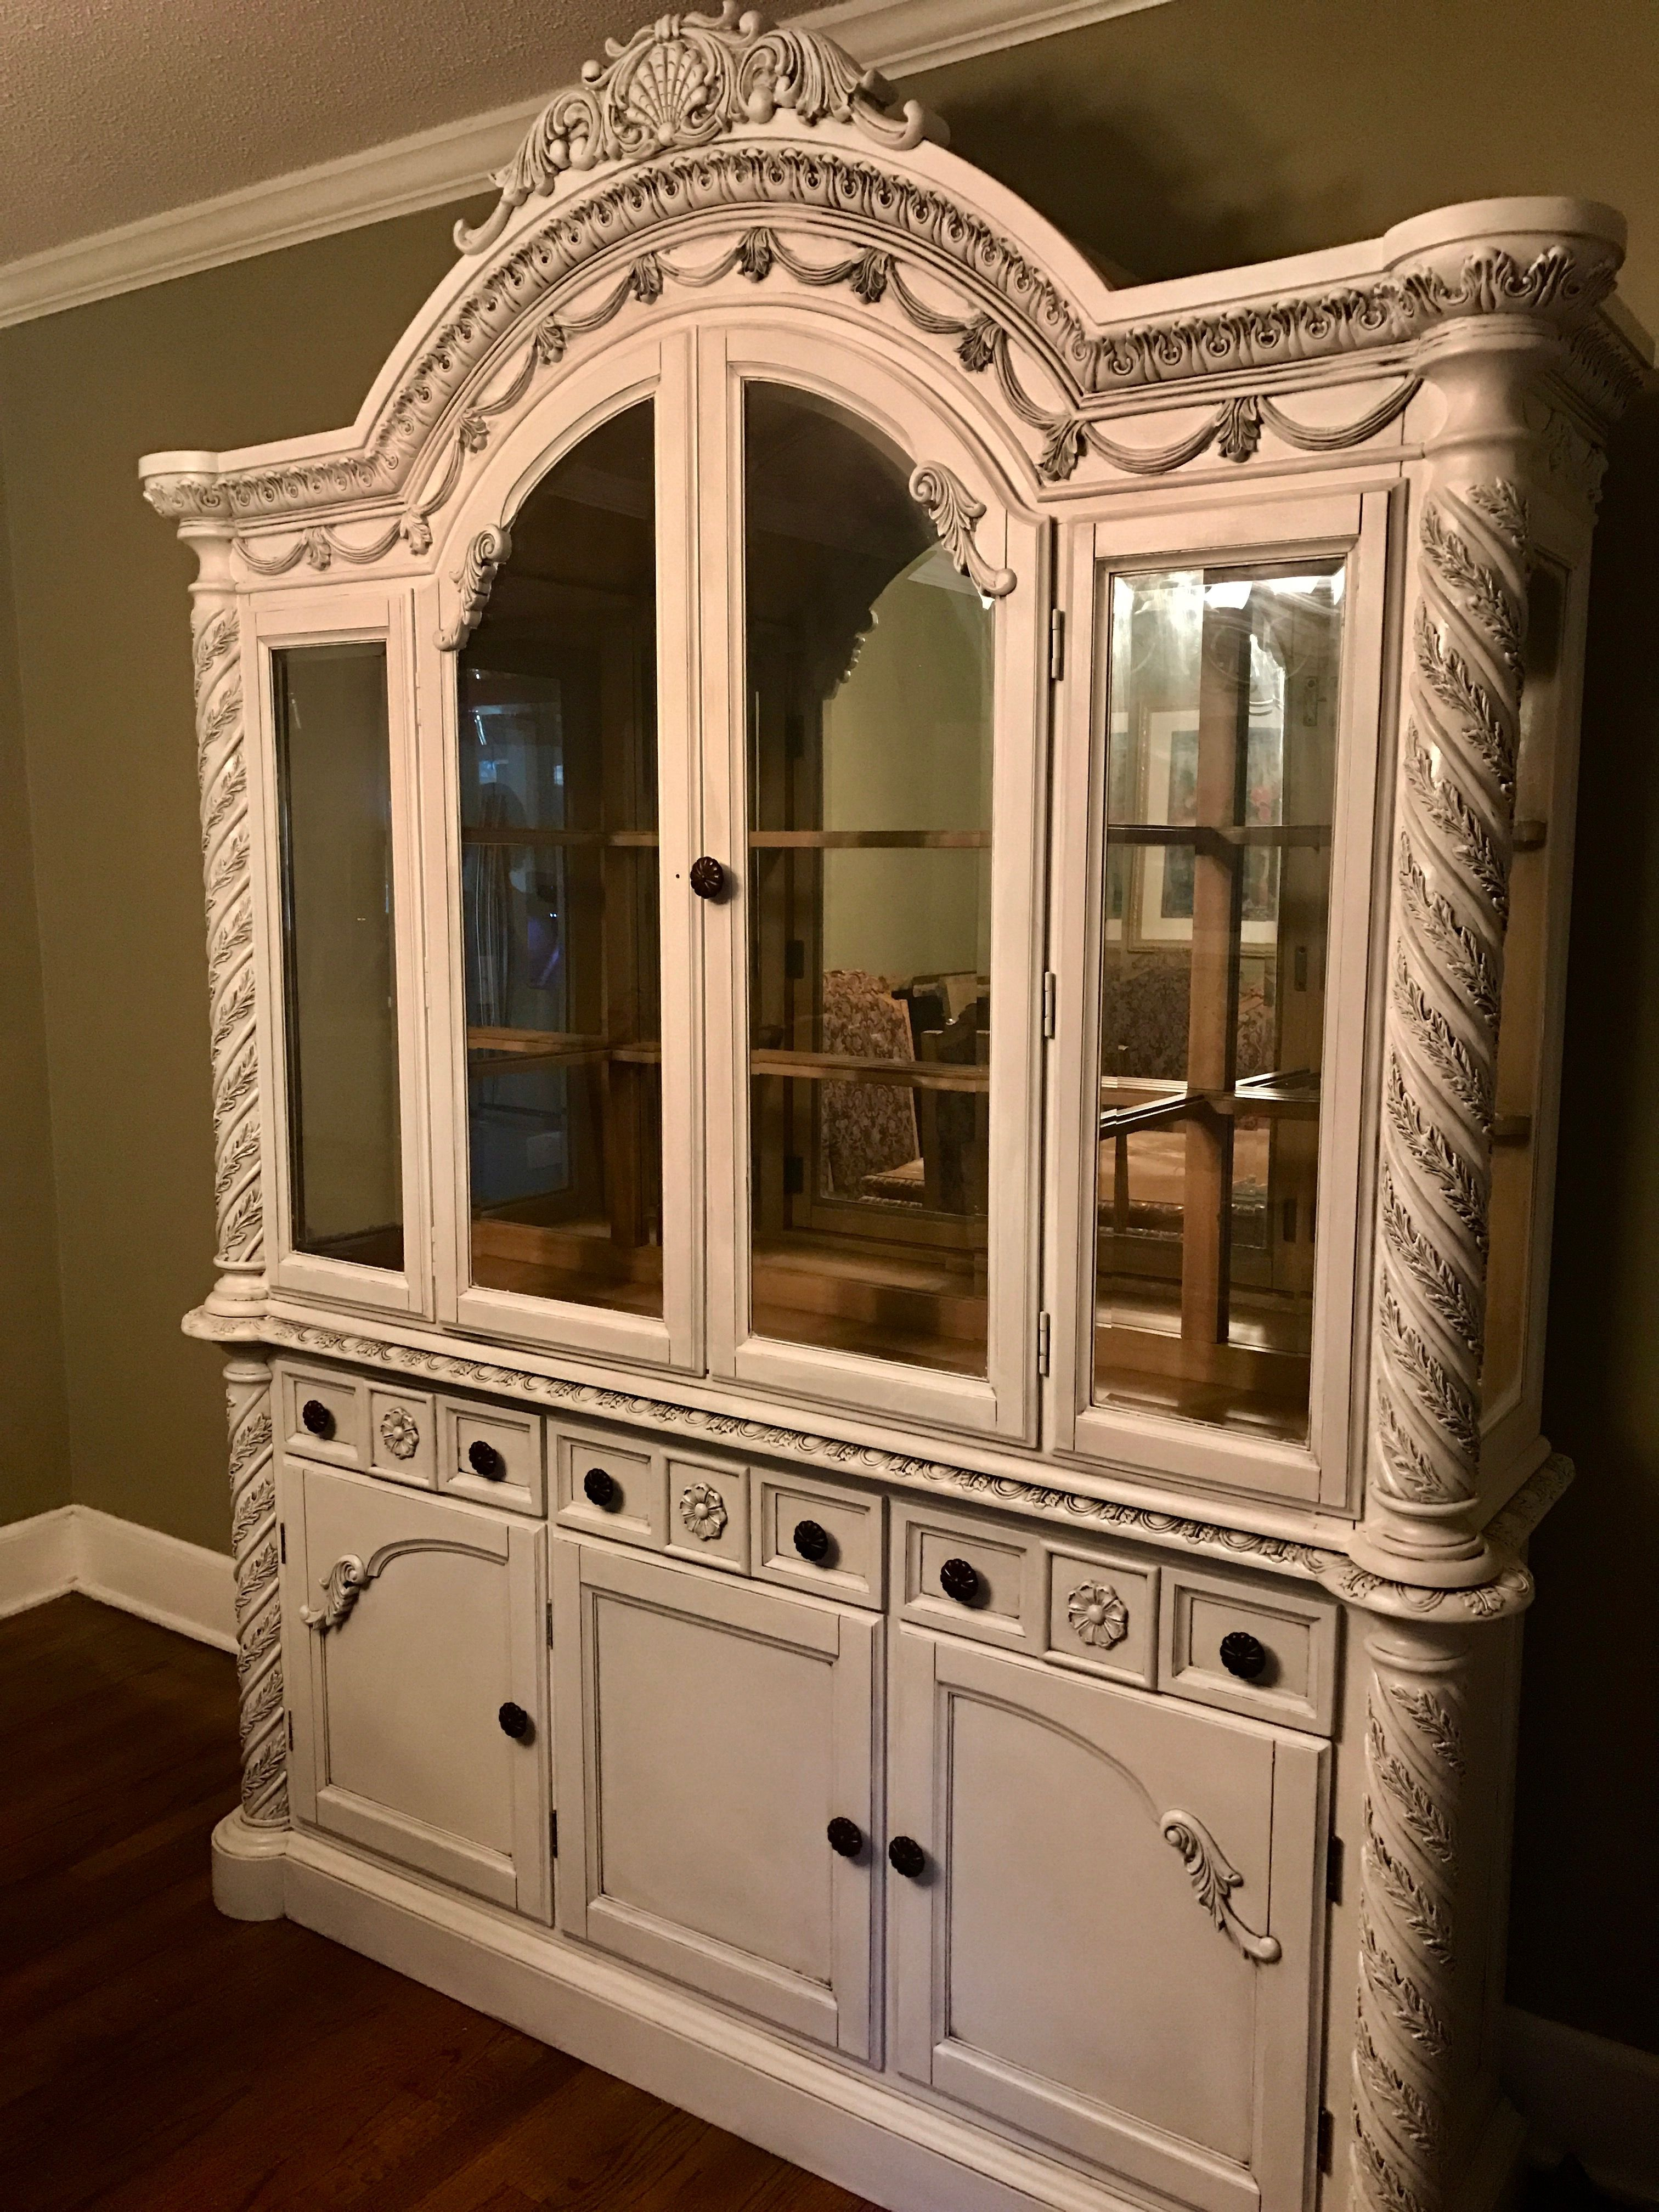 Salvage this stunning cabinet with Vintage Market antique ...